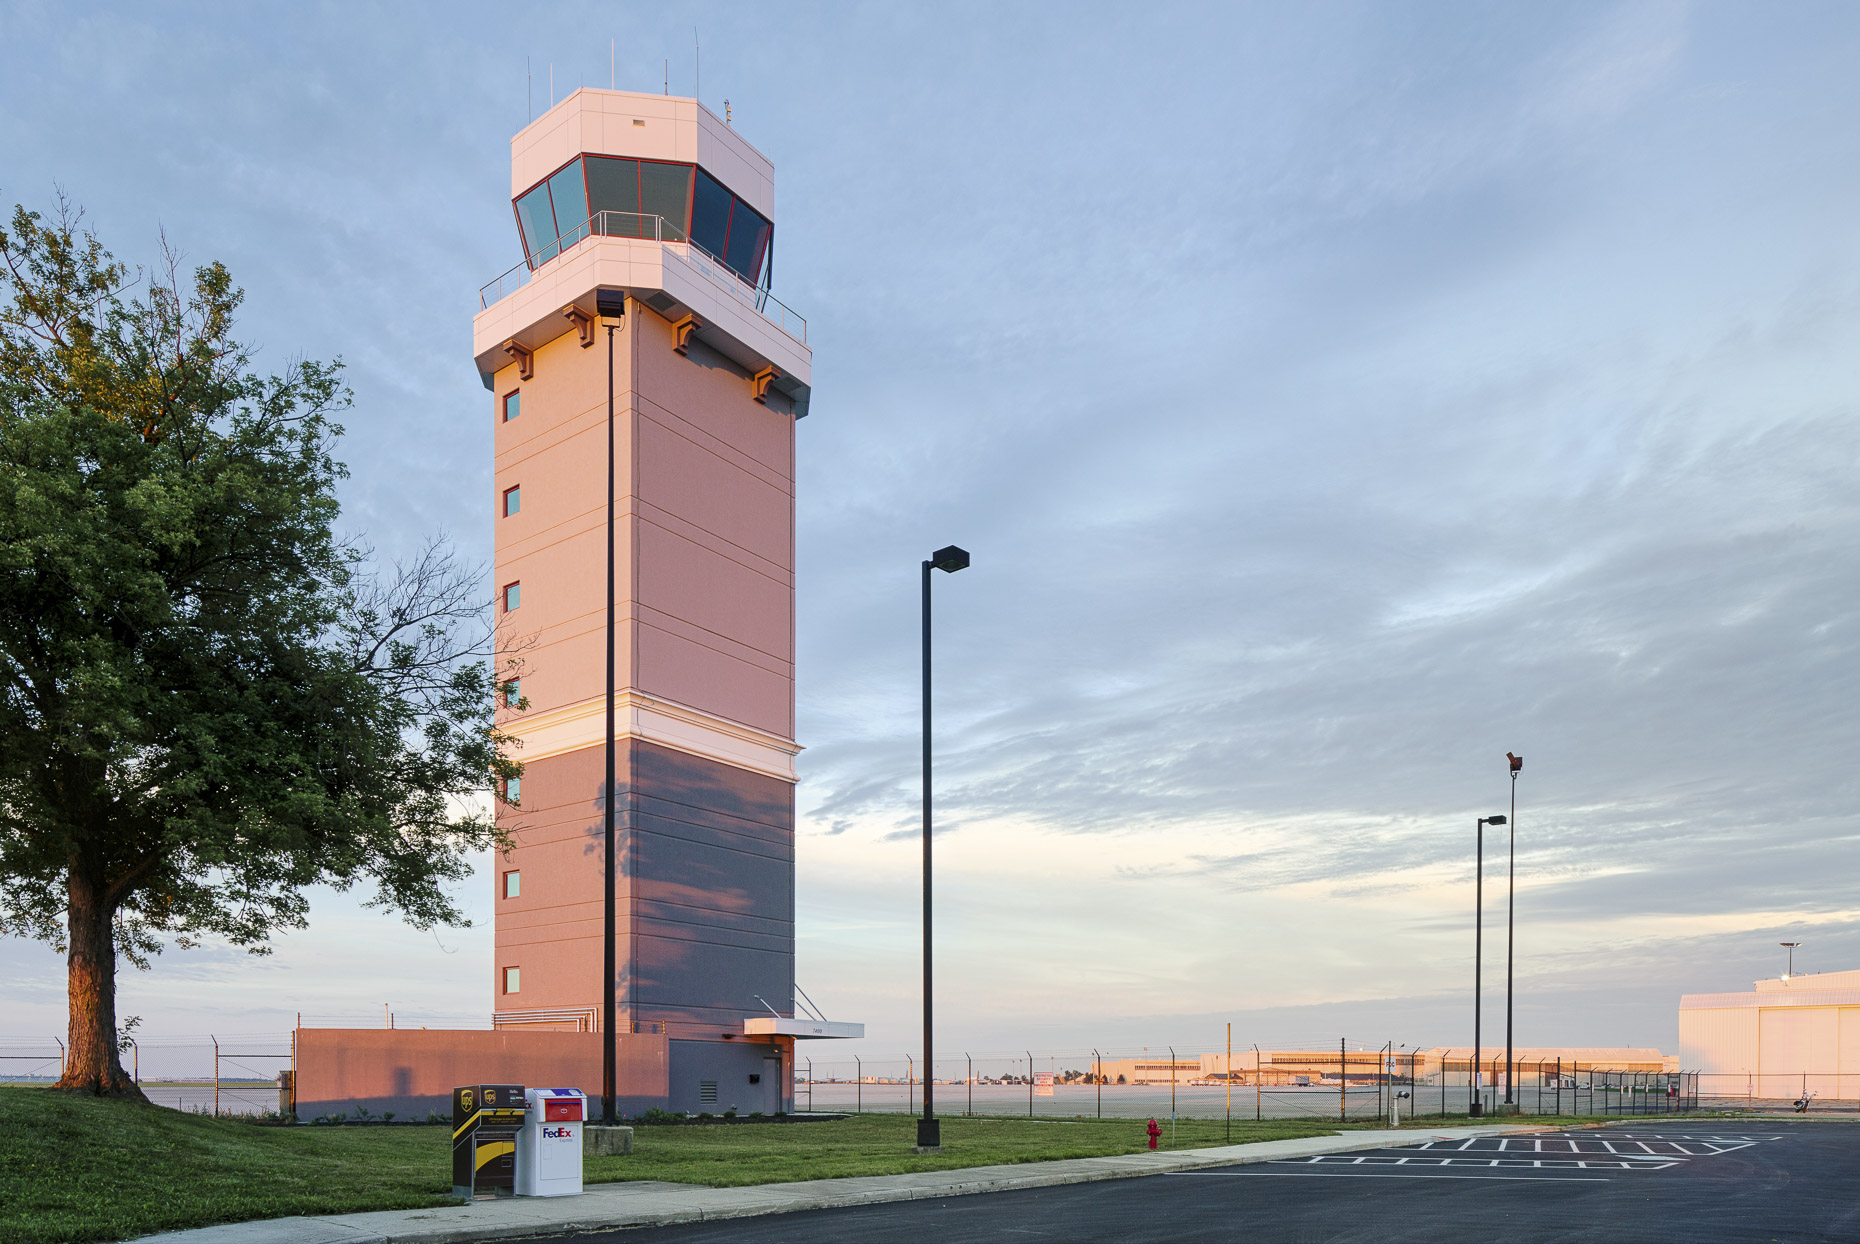 Rickenbacker International Airport ATC Tower by Smoot Construction photographed by Lauren K Davis based in Columbus, Ohio